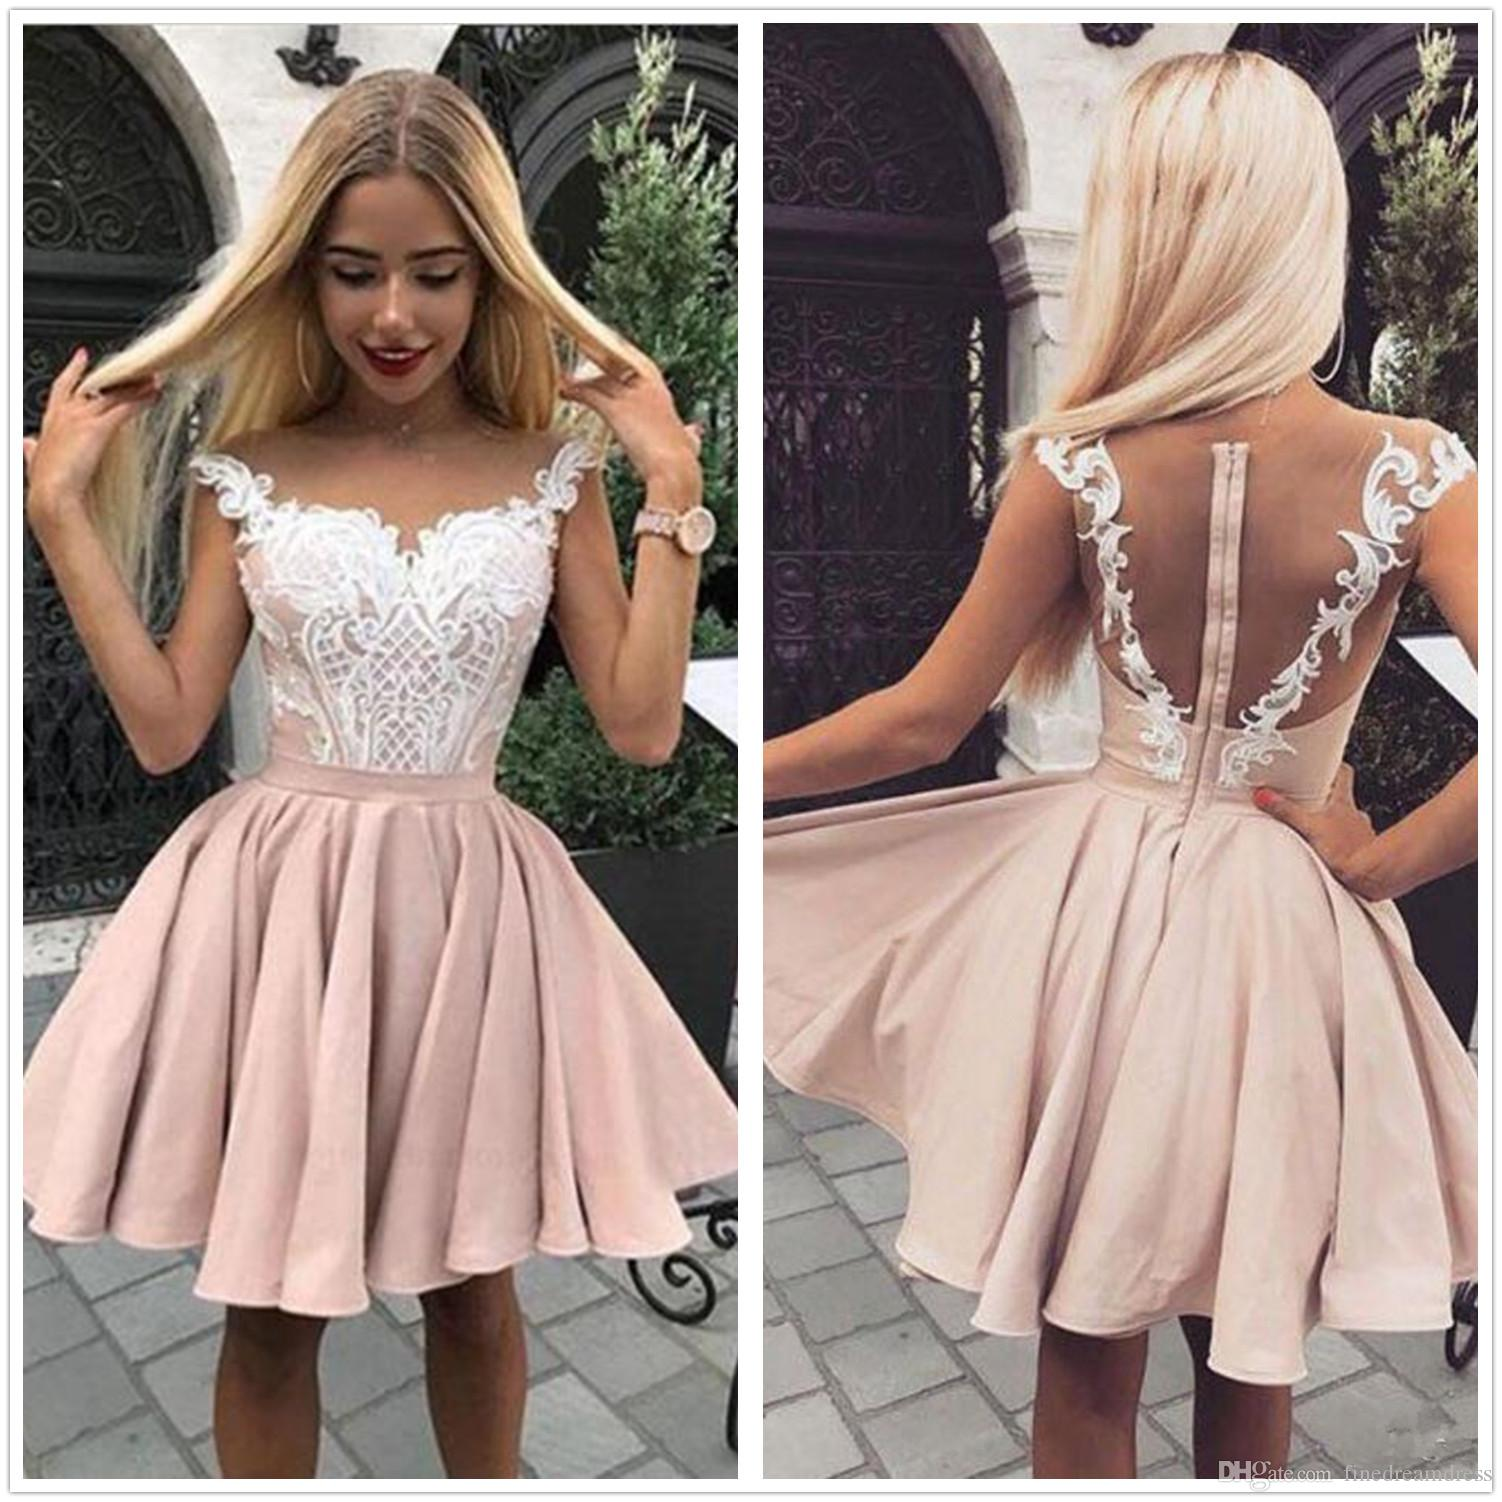 312f051e442 2019 Illusion Cap Sleeves Satin A Line Homecoming Dresses Tulle Lace  Applique Ruched Knee Length Formal Party Cocktail Prom Dresses Cute  Homecoming Dresses ...